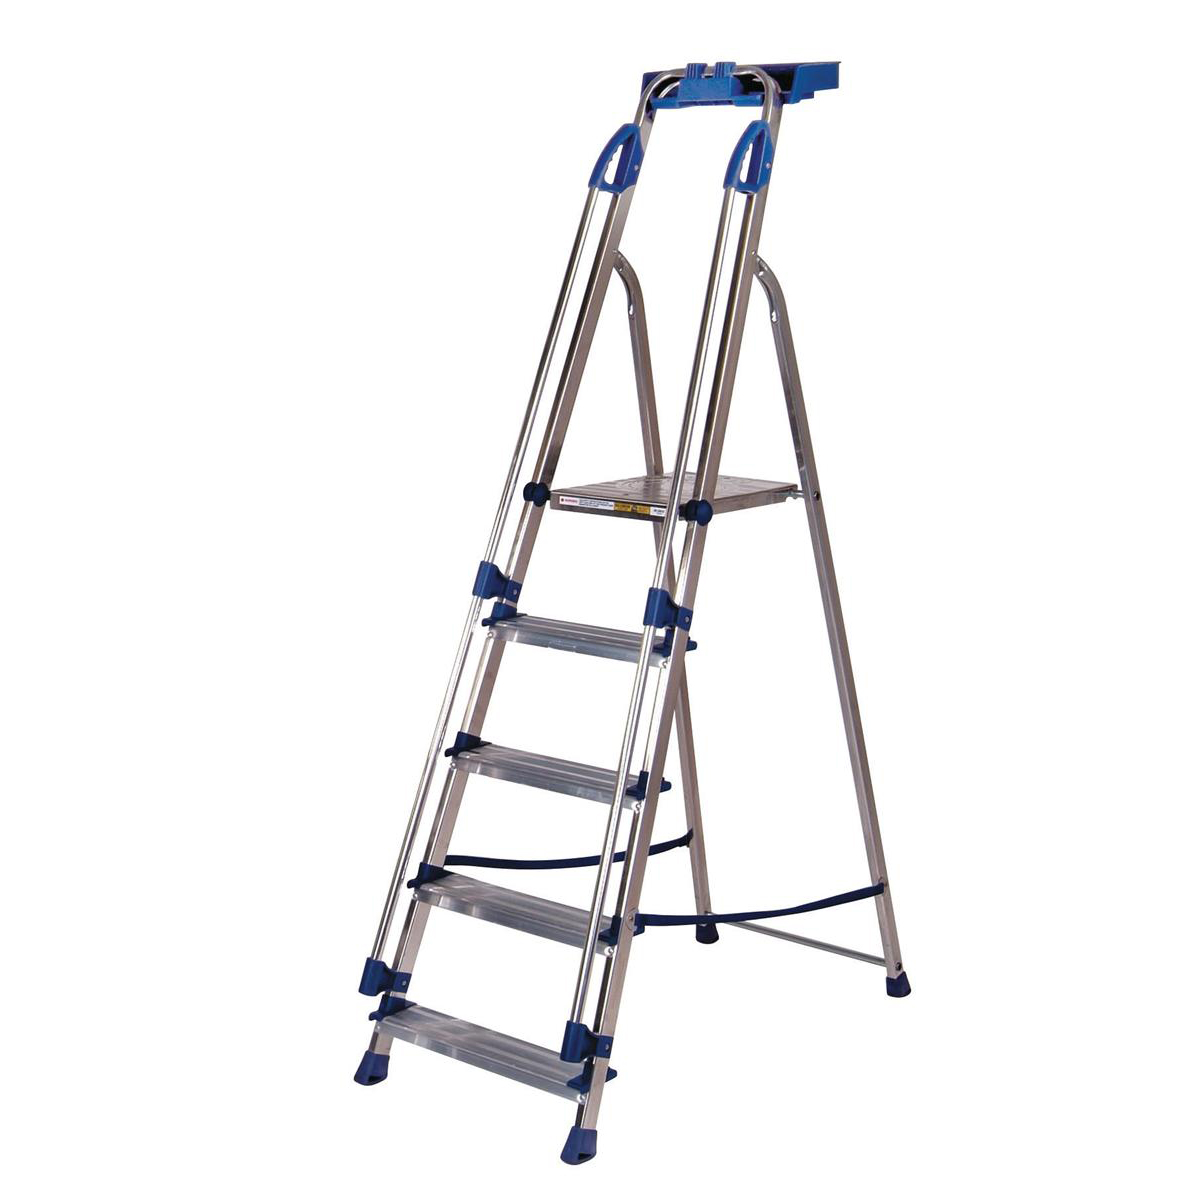 Image for Tradesman Platform Step Ladder 5 Steps Capacity 150kg Silver/Blue